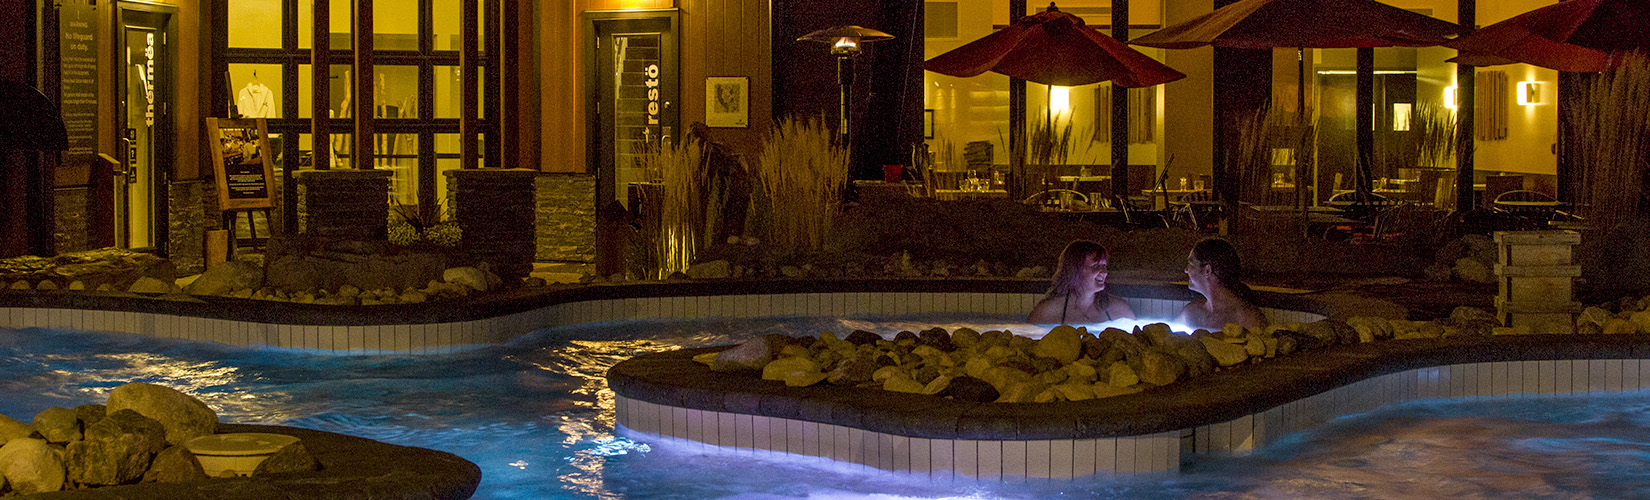 Thermëa by Nordik Spa-Nature - Winnipeg's Modern Oasis :: I've Been Bit! A Travel Blog